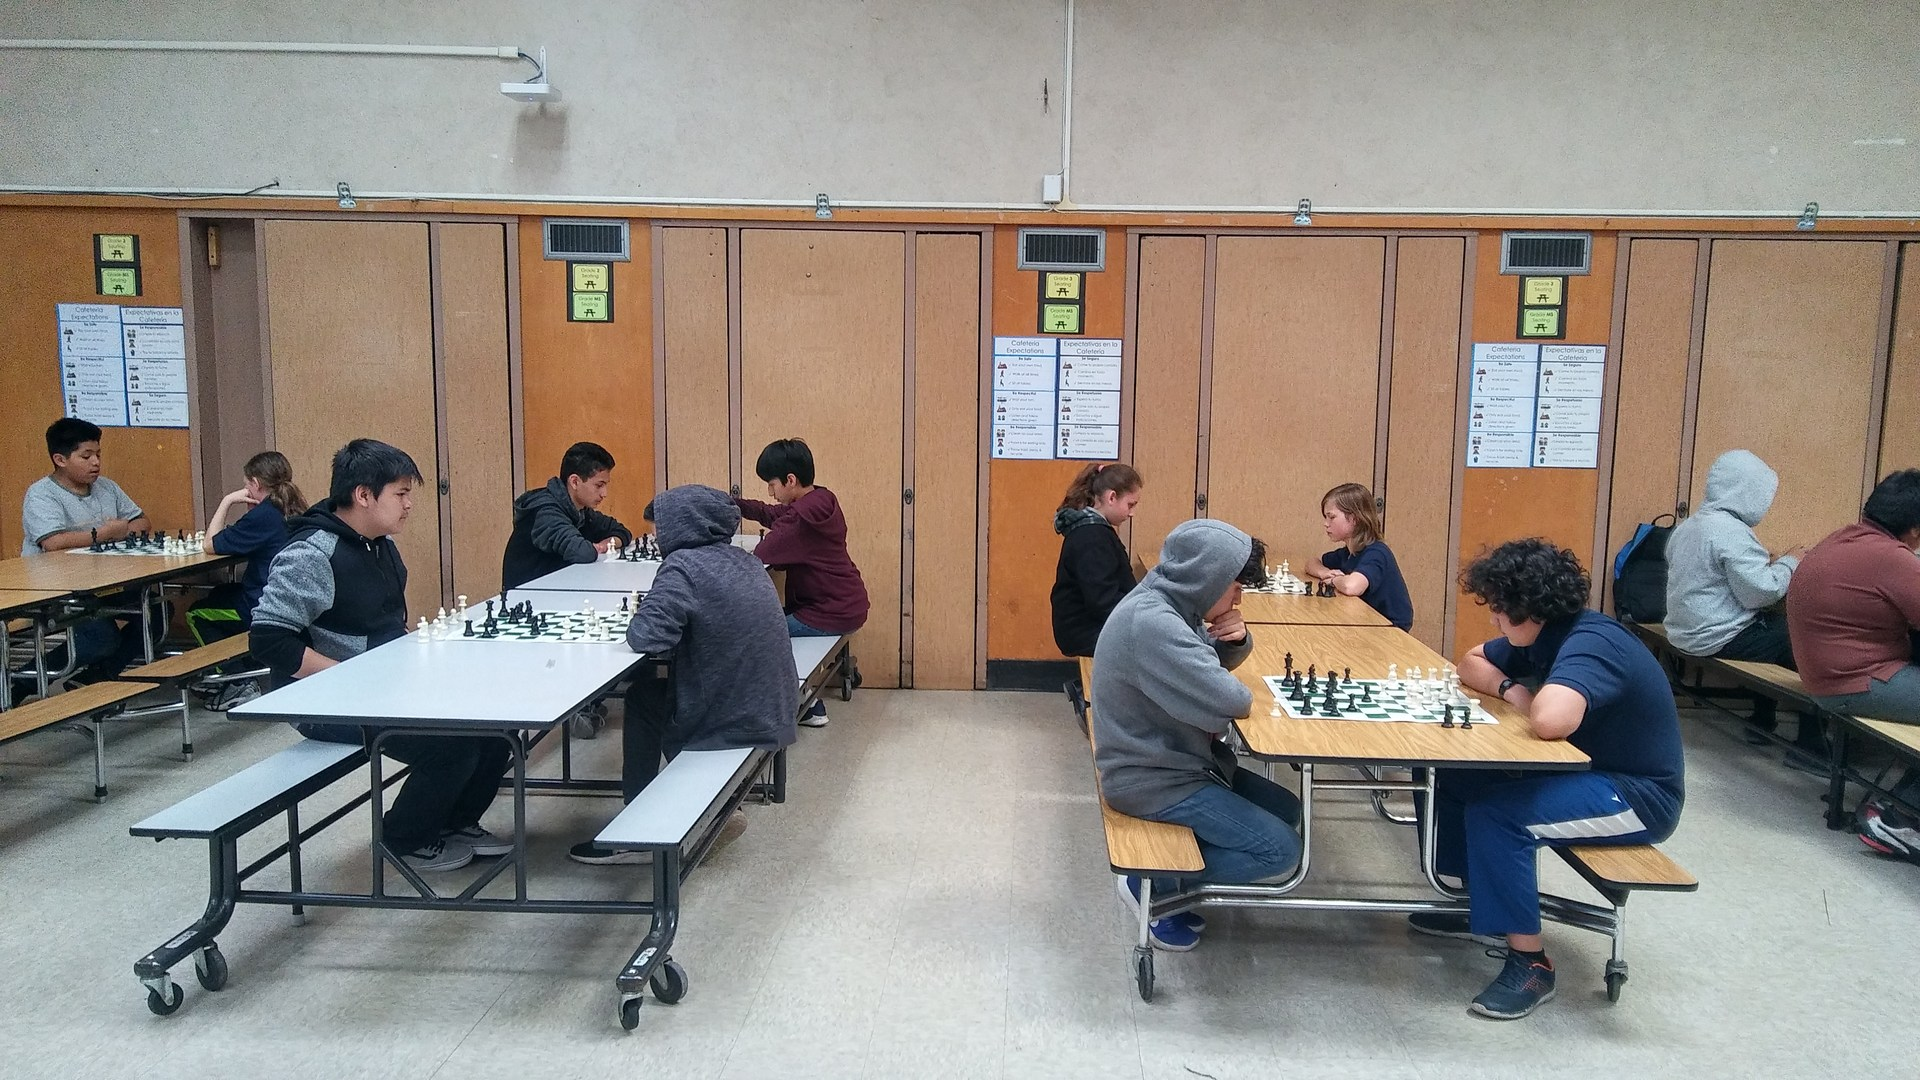 Middle School students playing chess in the second round of the tournament.